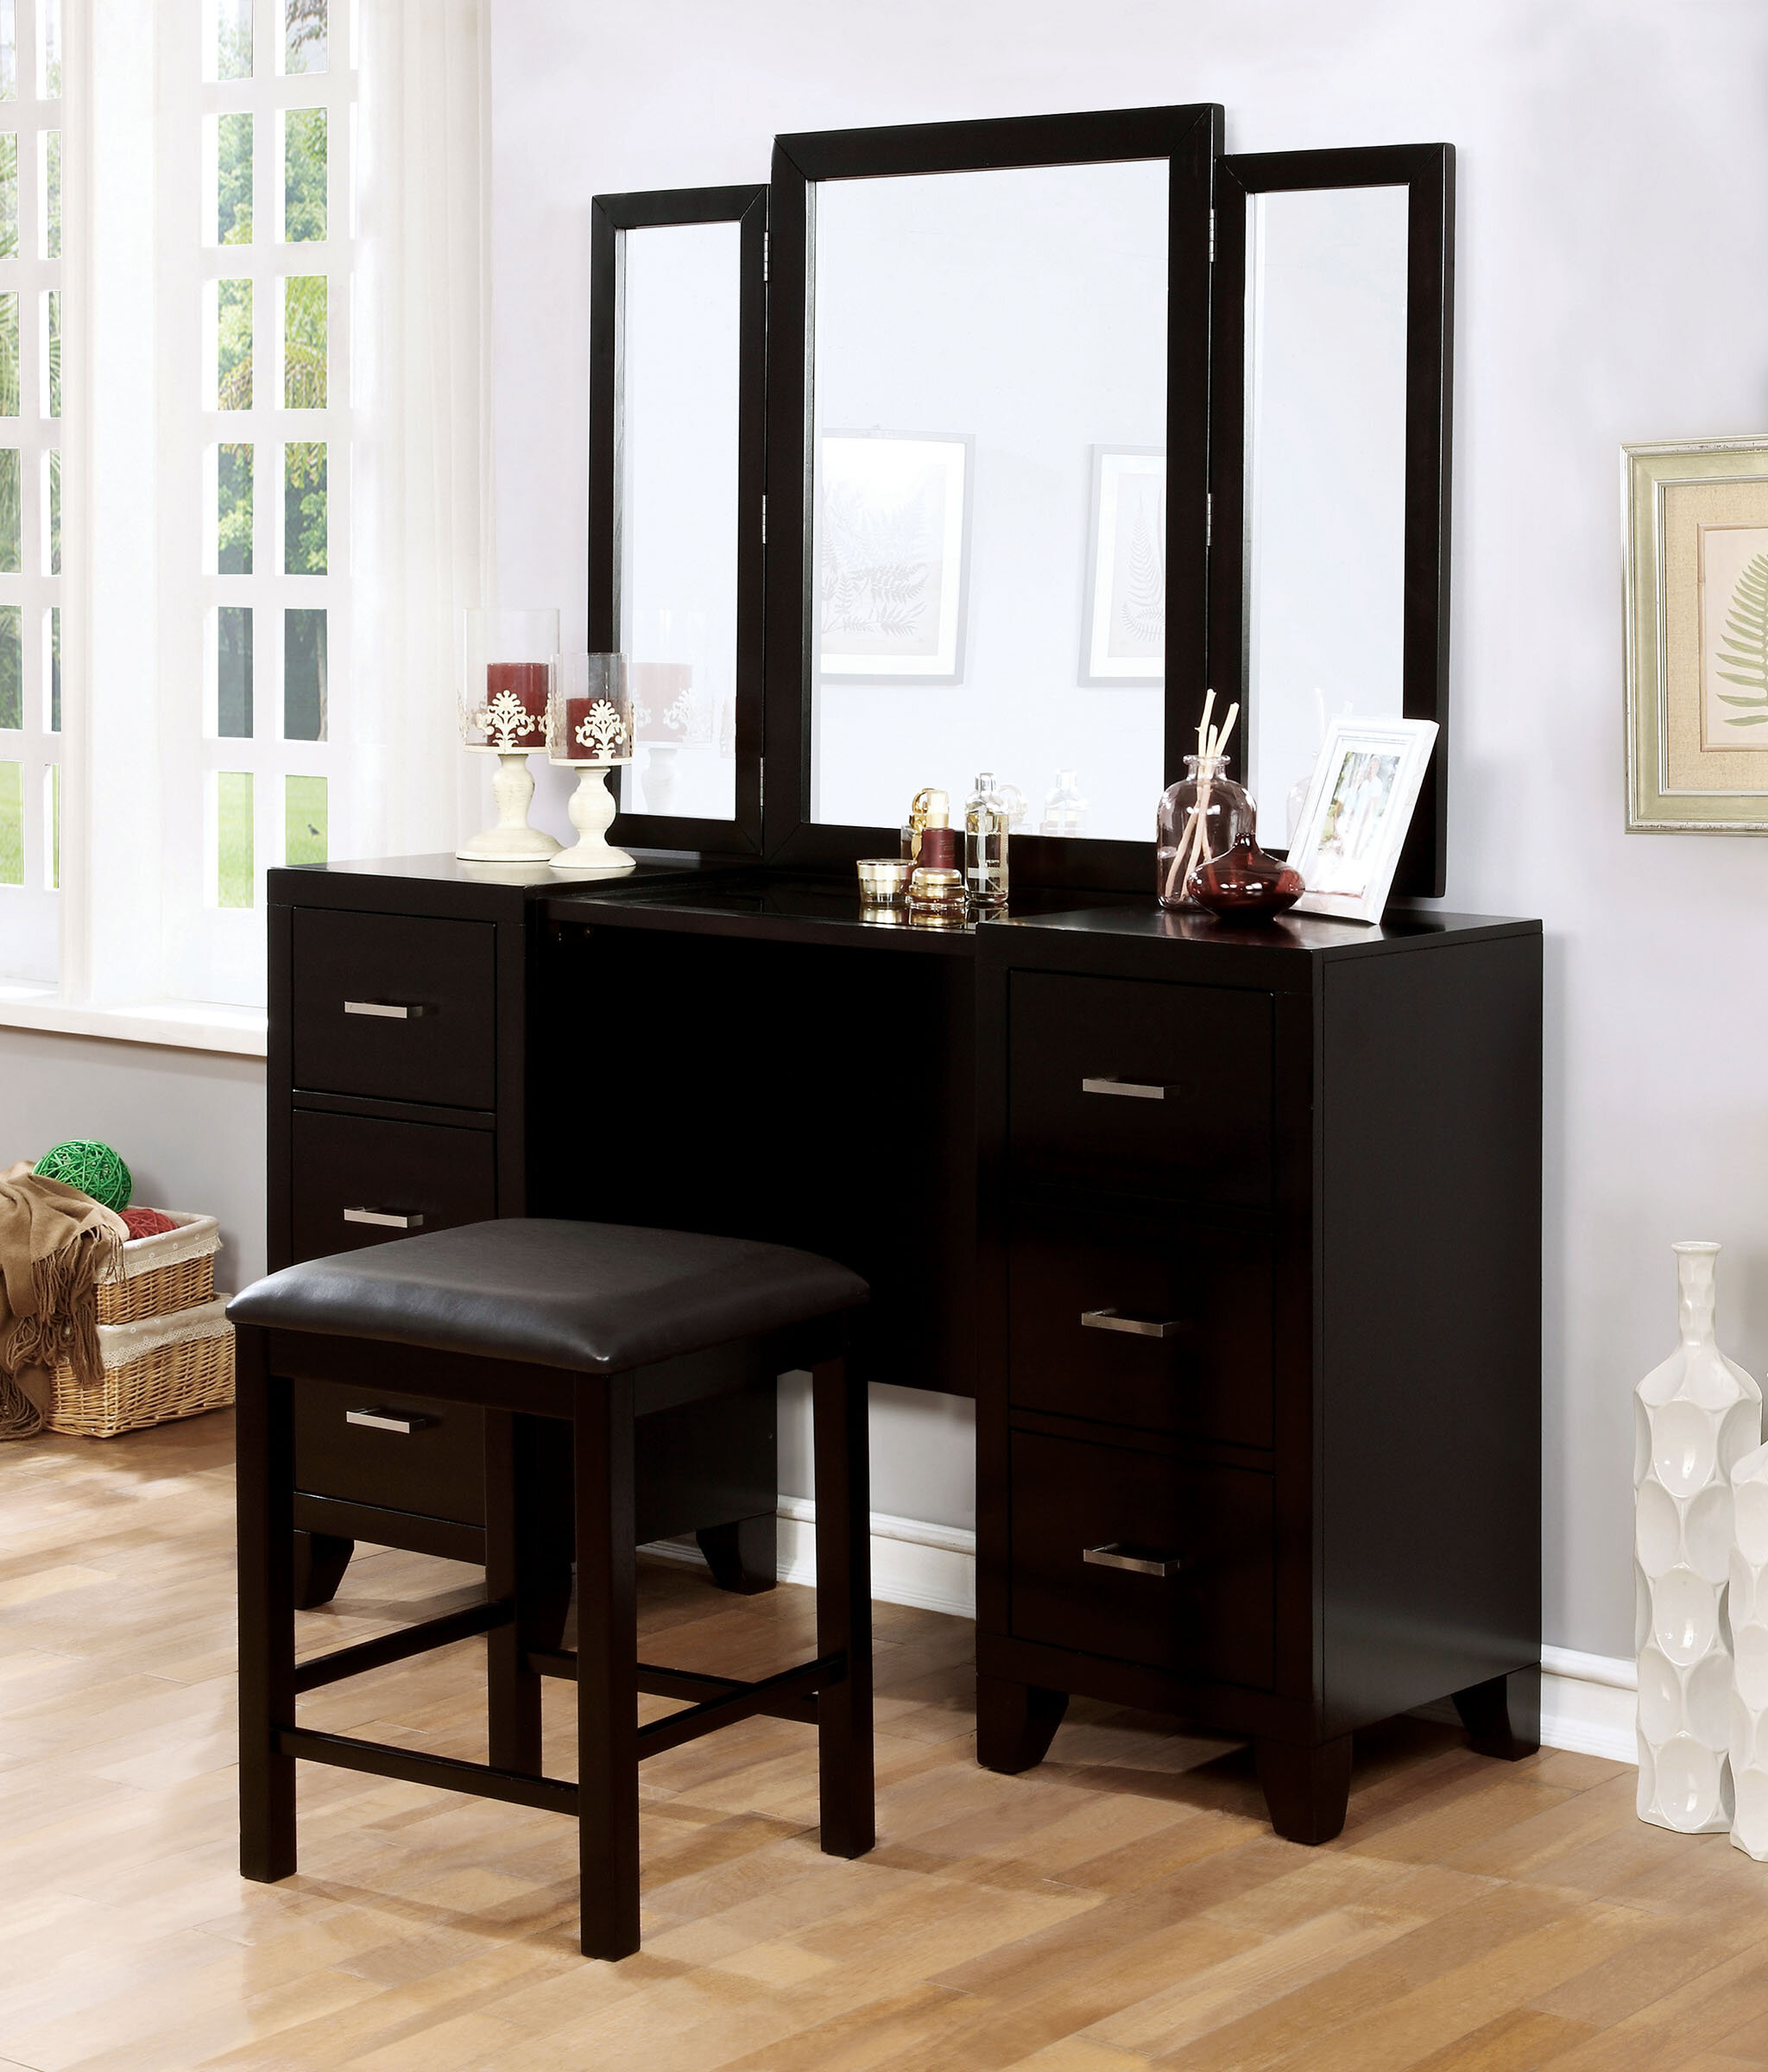 Peachy Harrelson Vanity Set With Stool And Mirror Gmtry Best Dining Table And Chair Ideas Images Gmtryco